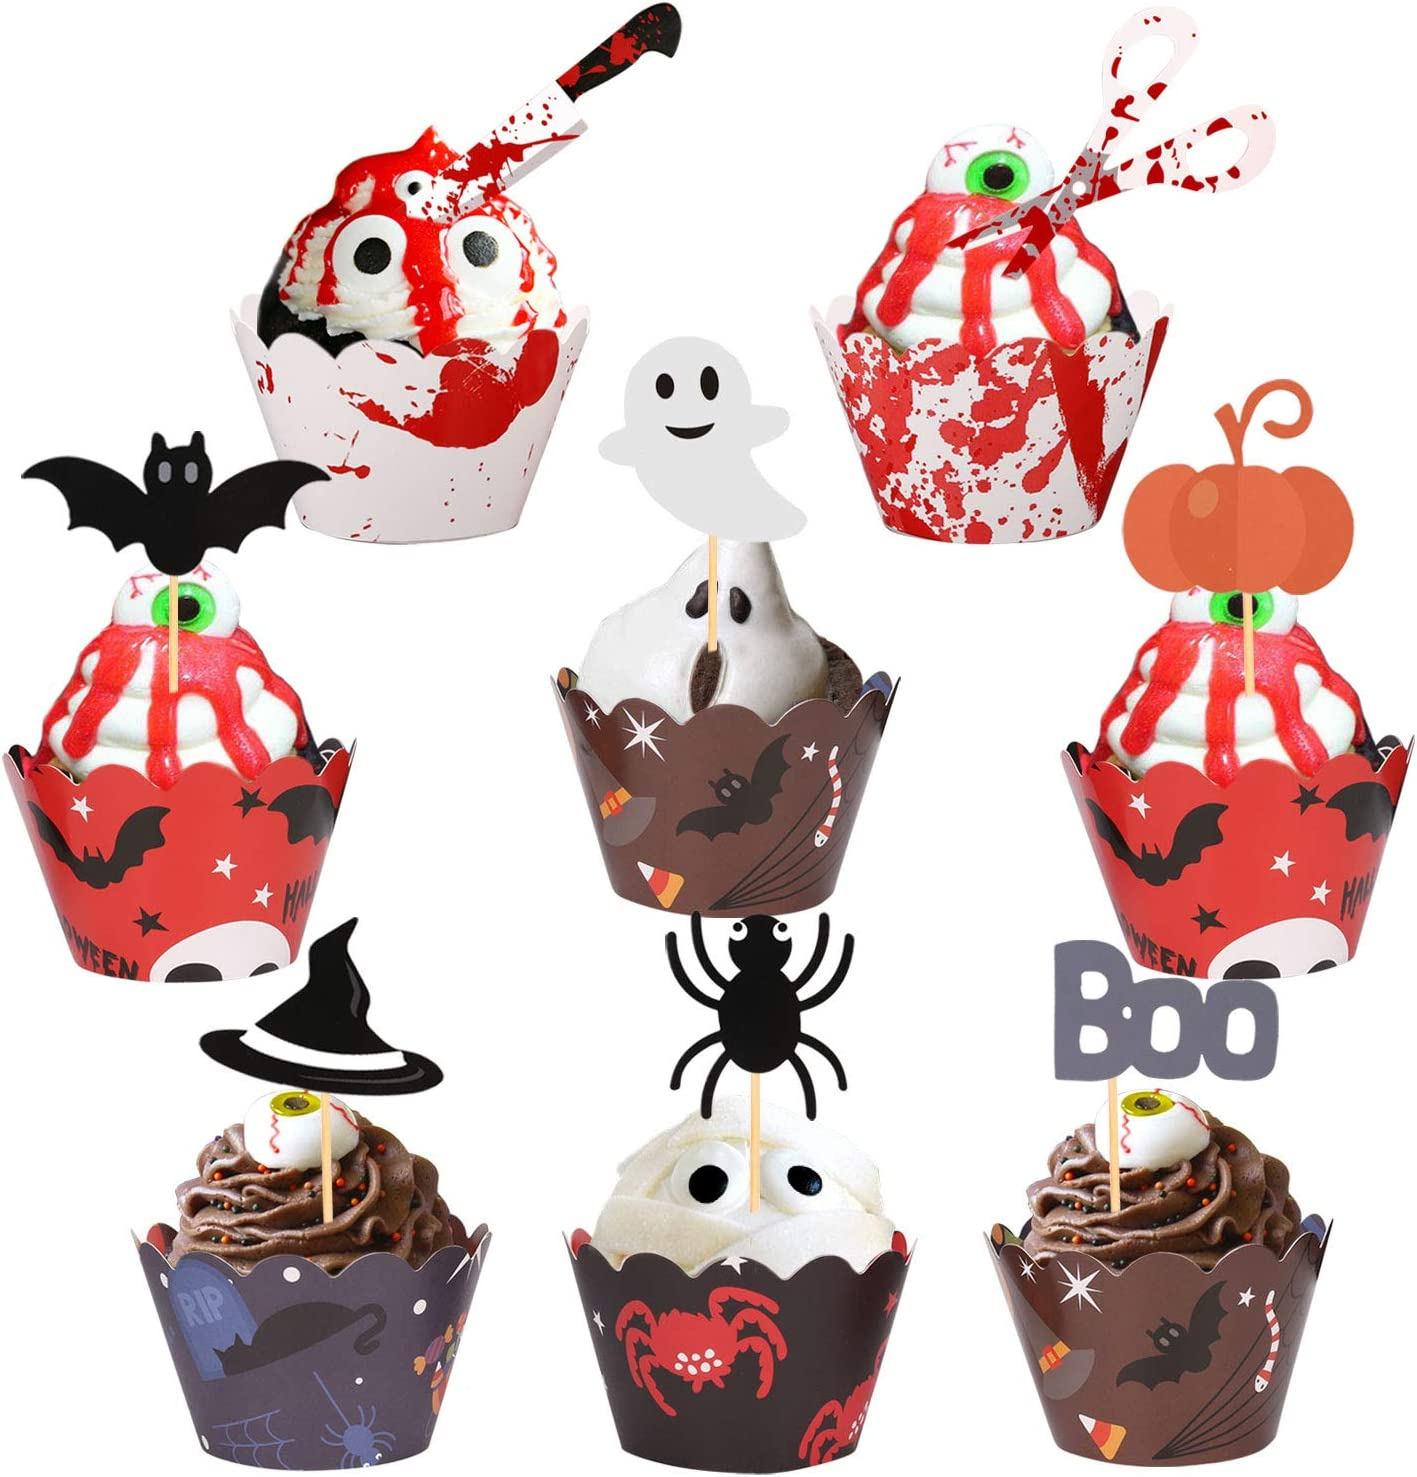 Konsait 48pcs Halloween Cupcake Toppers Wrappers - Spider Web Pumpkin Zombie Hand picks Food Decor Cake Party Haunted Hosed Halloween Birthday Party Centerpiece Decorations Supplies